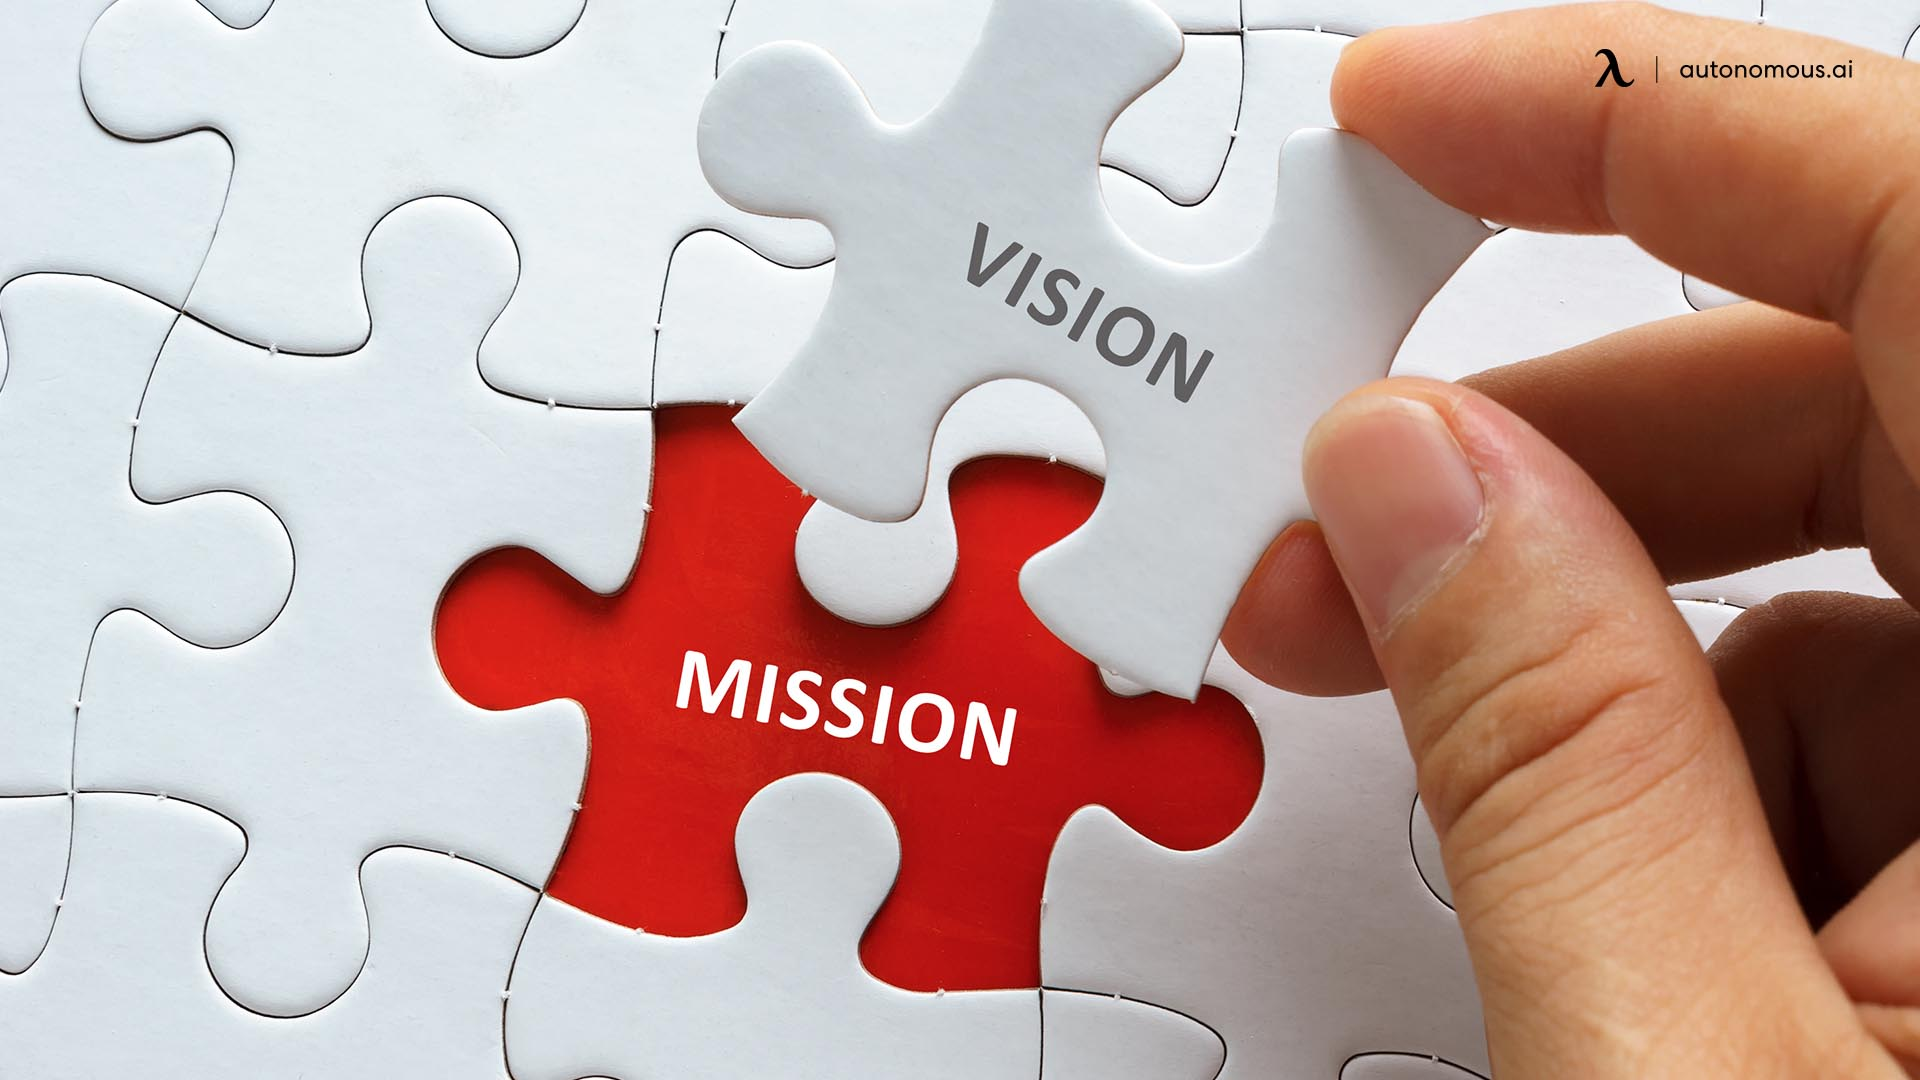 Shared Vision and Mission